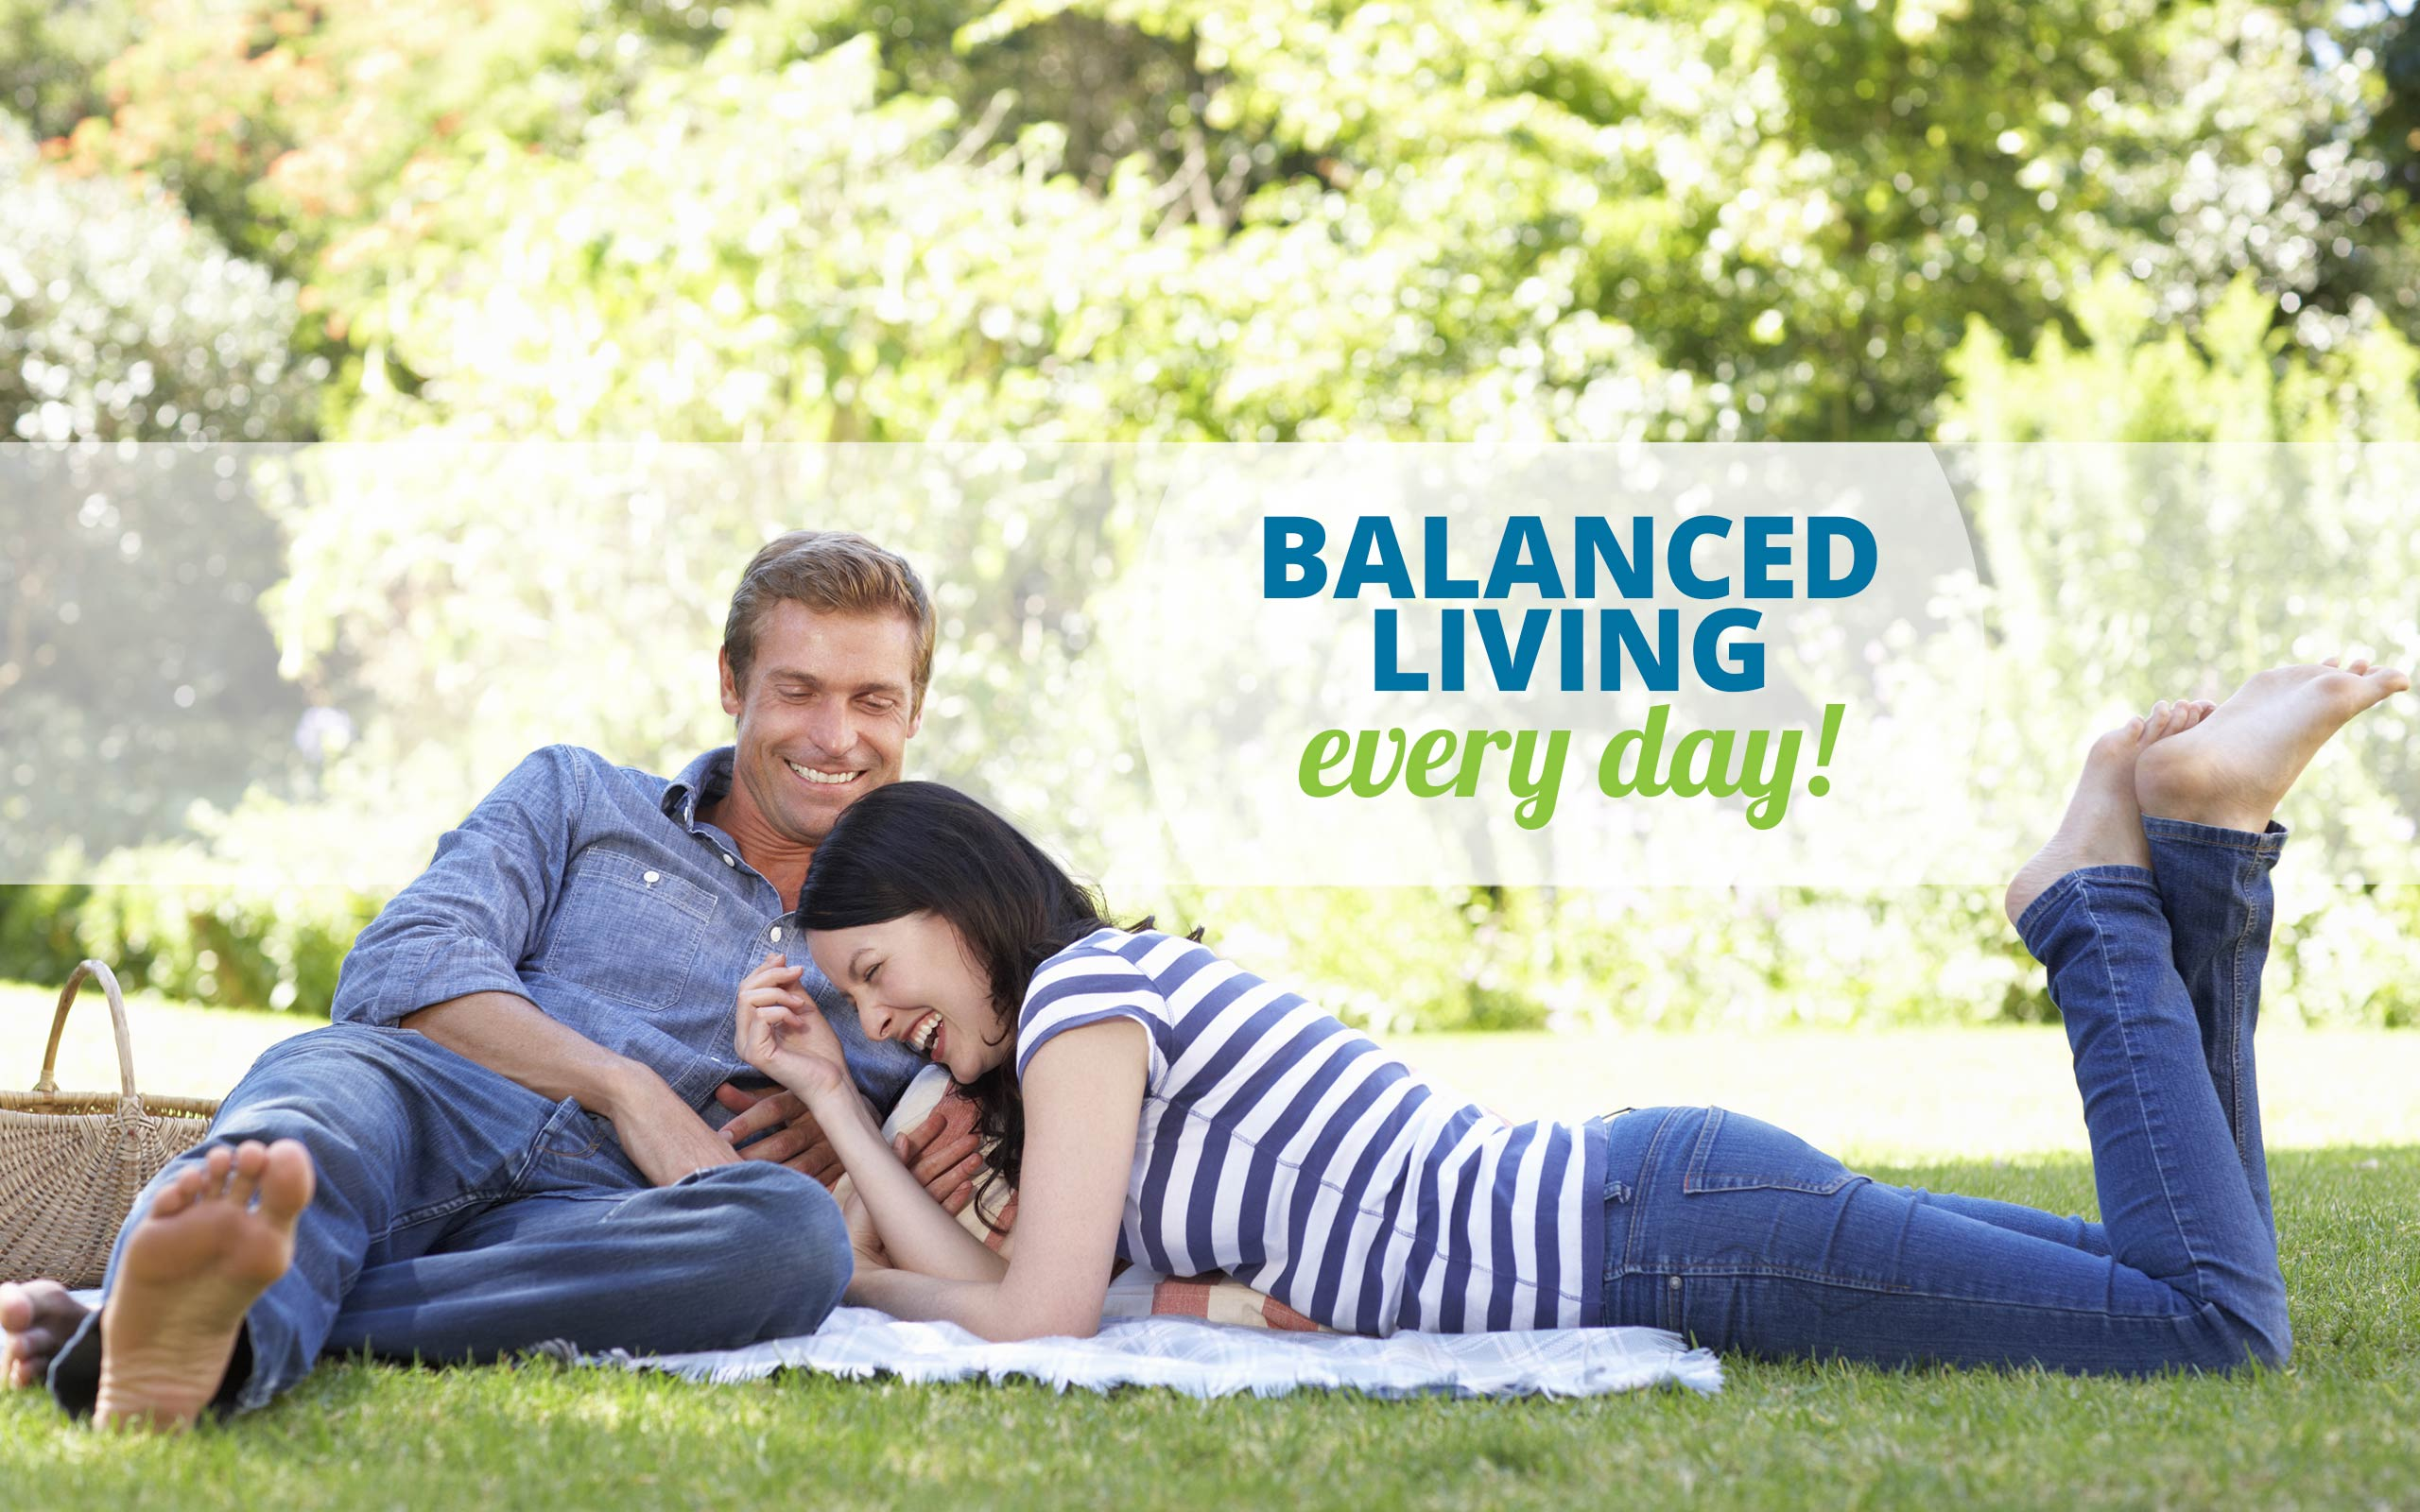 Balanced living every day! Centrus Park 54 Slobodian Avenue Eight Mile Plains.